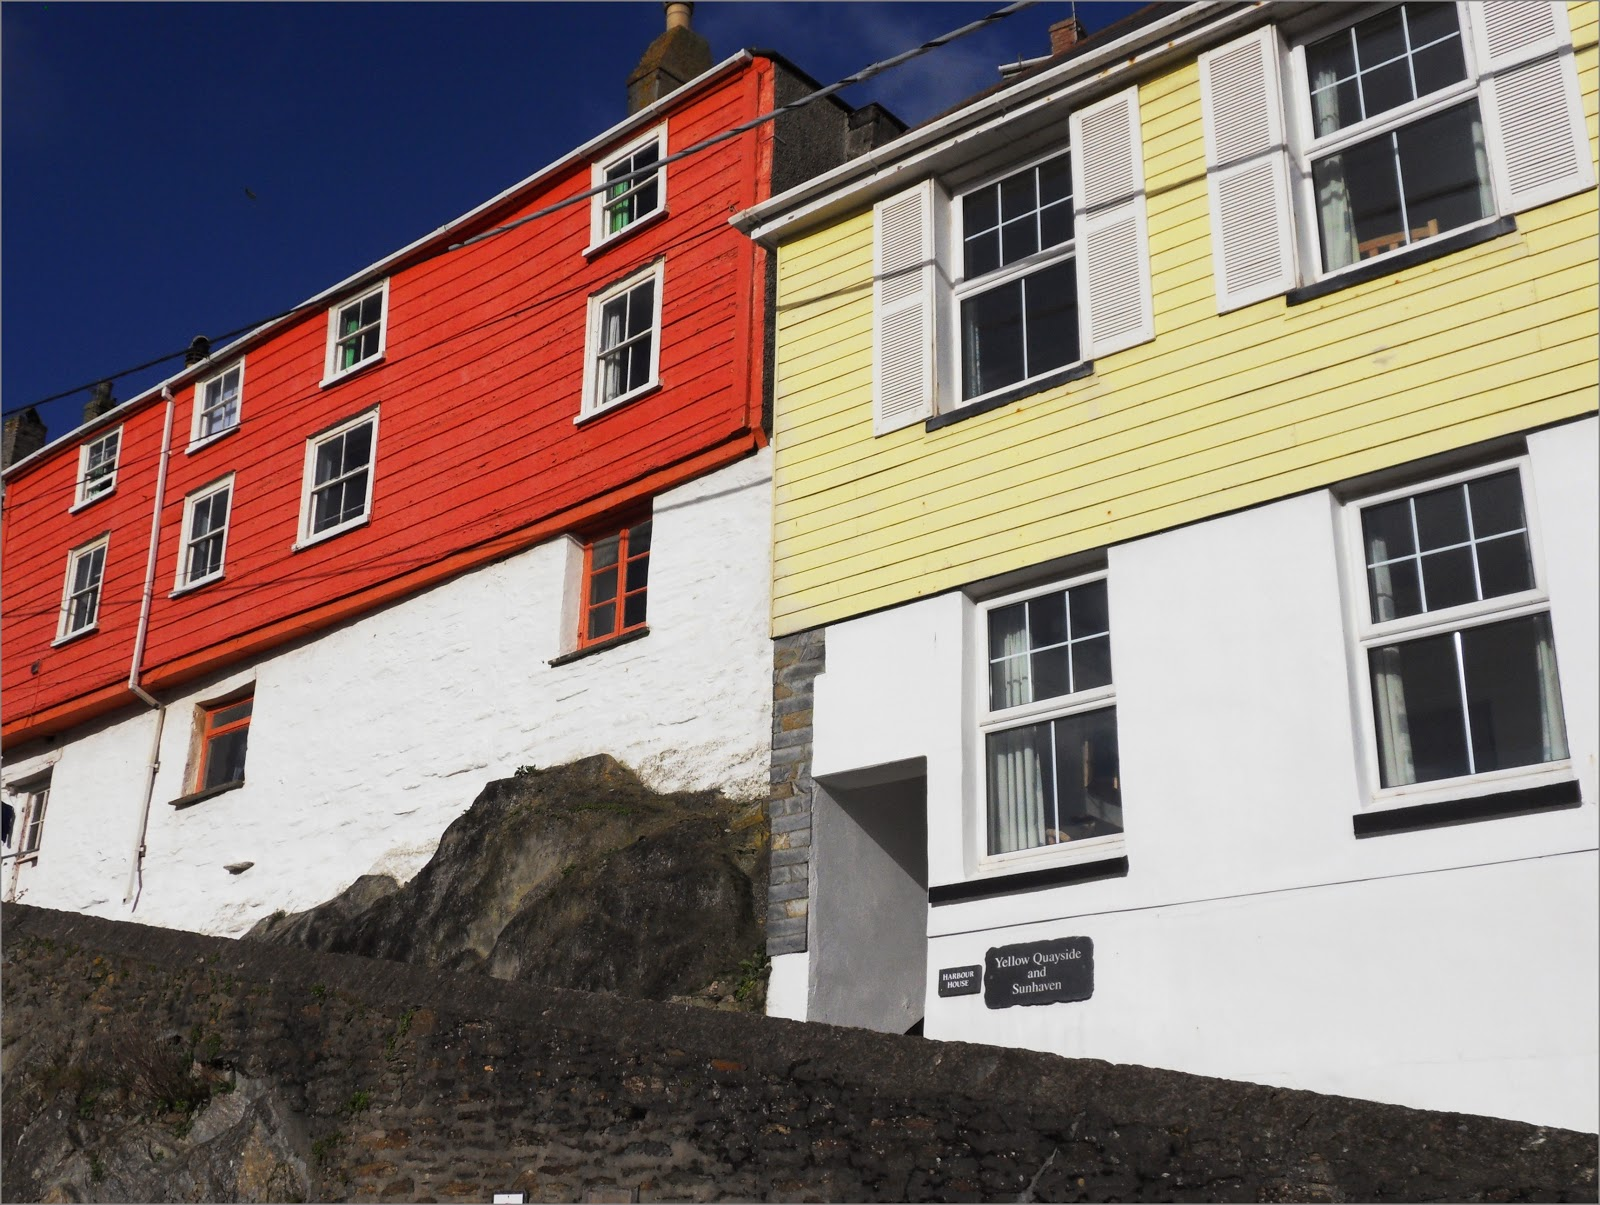 Houses on a hill in Mevagissey Cornwall